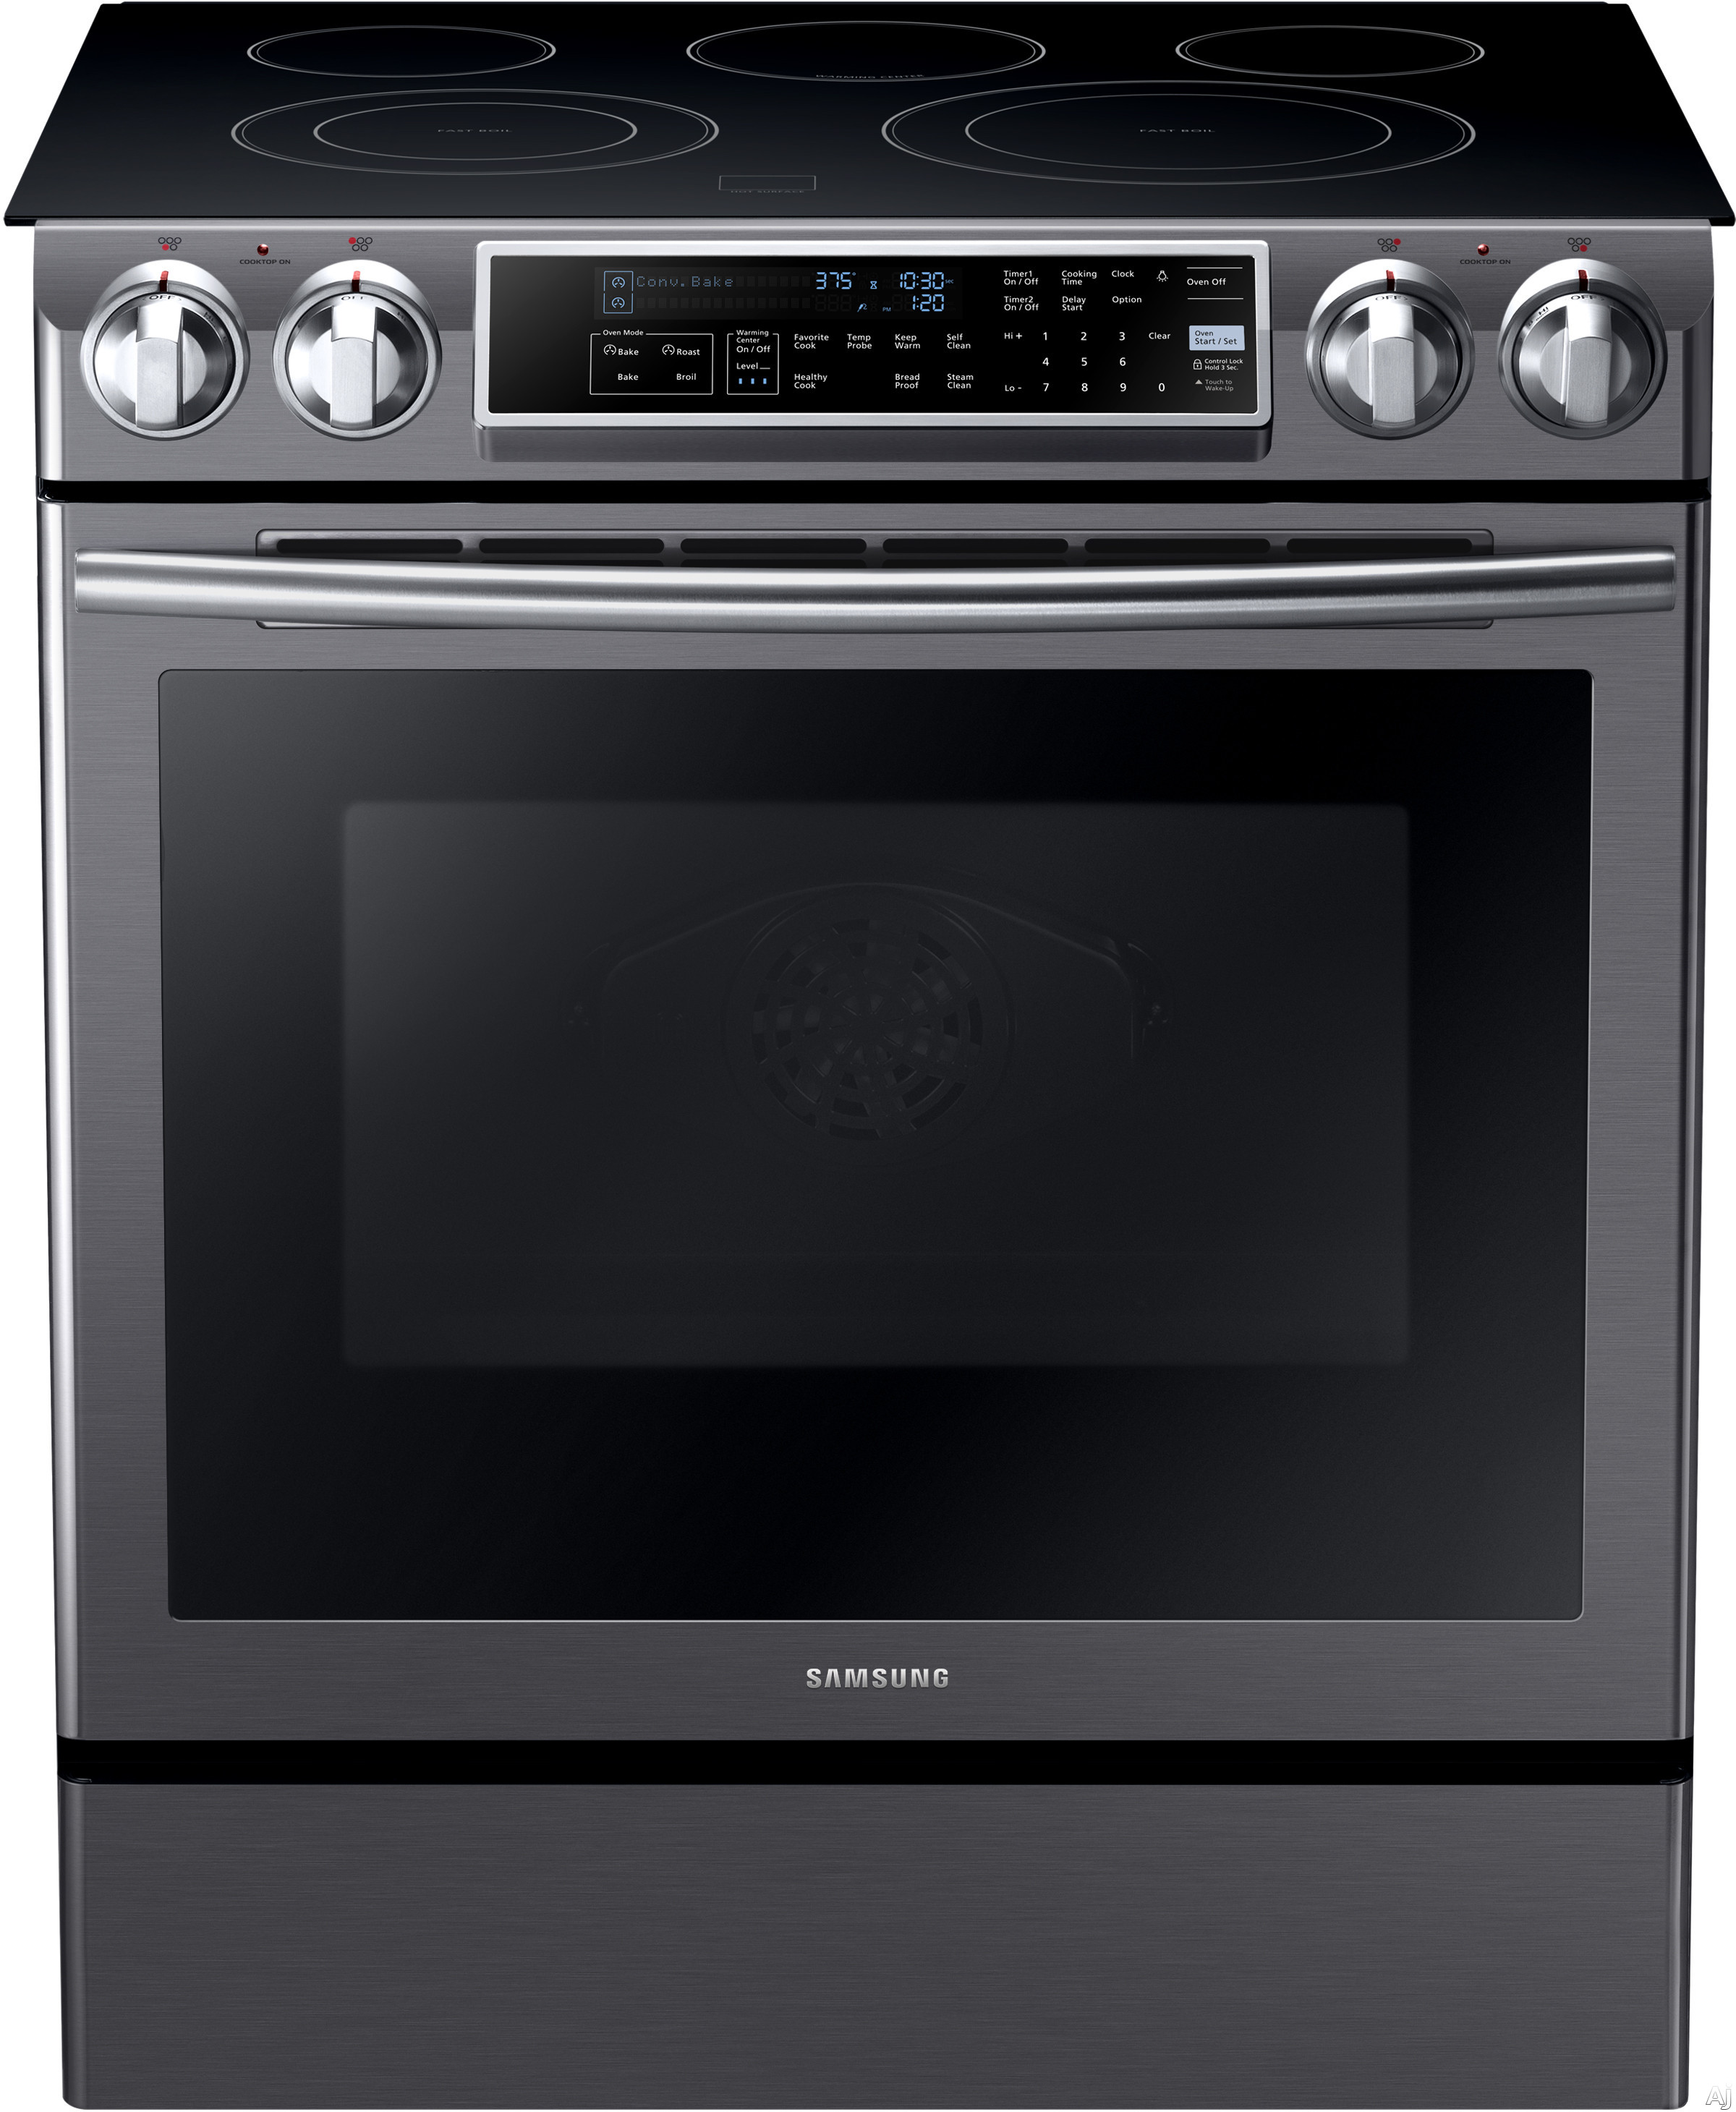 Samsung NE58K9500SG 31 Inch Slide-In Electric Range with 5 Heating Elements, 5.8 cu. ft. Convection Oven, Guiding Light Controls, Perfect Cooking Probe, Storage Drawer and Self Clean with Steam